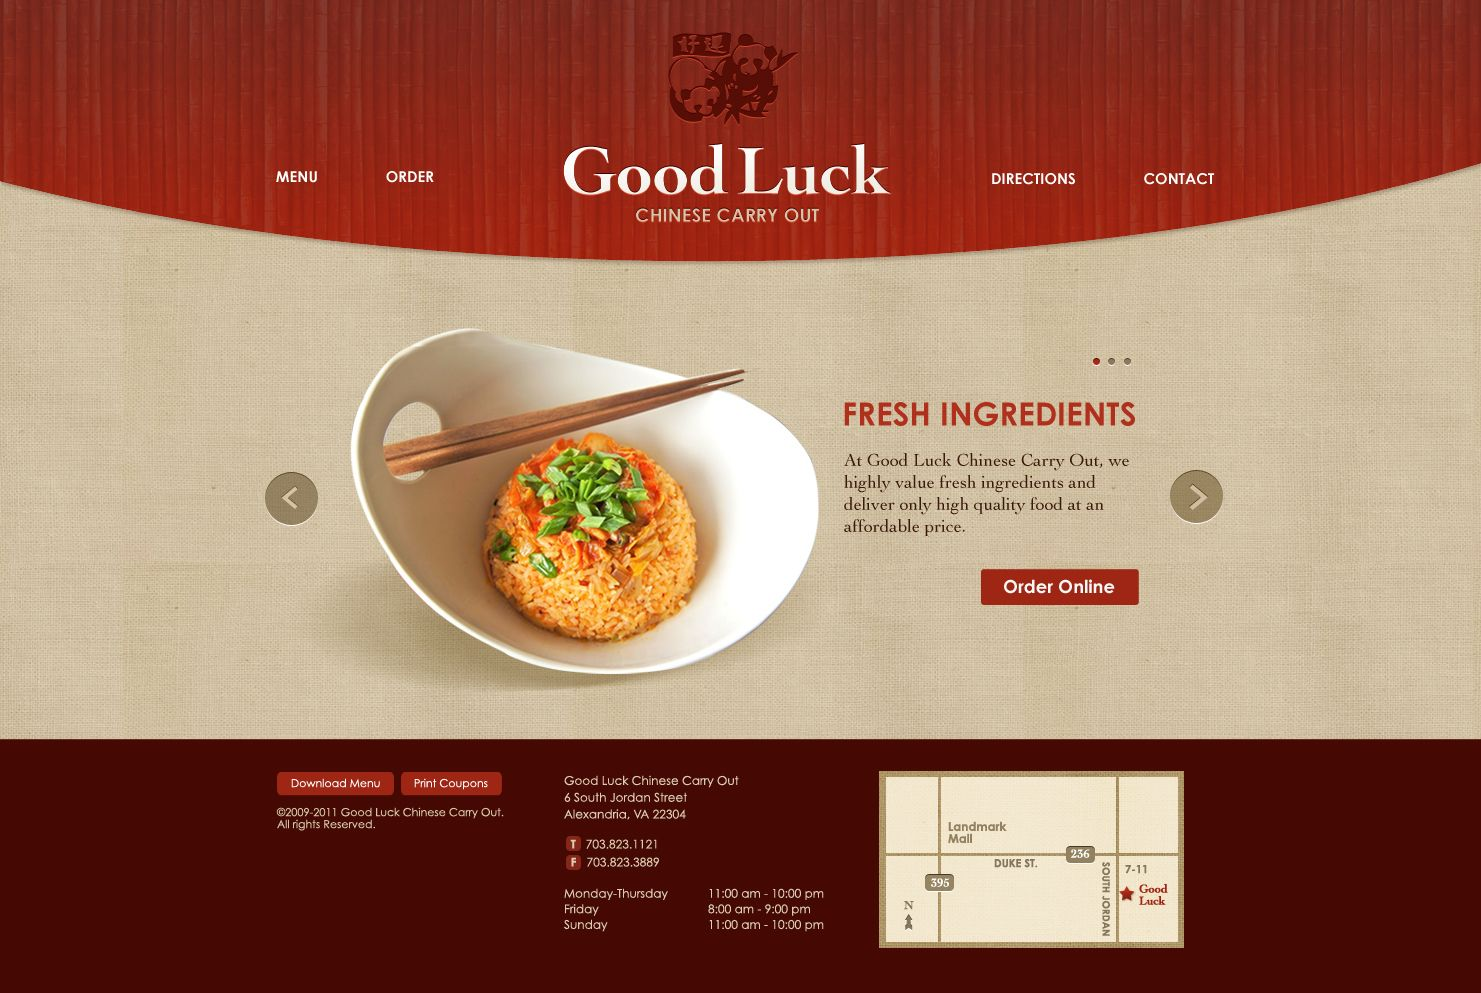 Just Trying To Look At Restaurant Websites That Strike Me As Upscale This One Is Nice Restaurant Website Design Restaurant Website Food Design